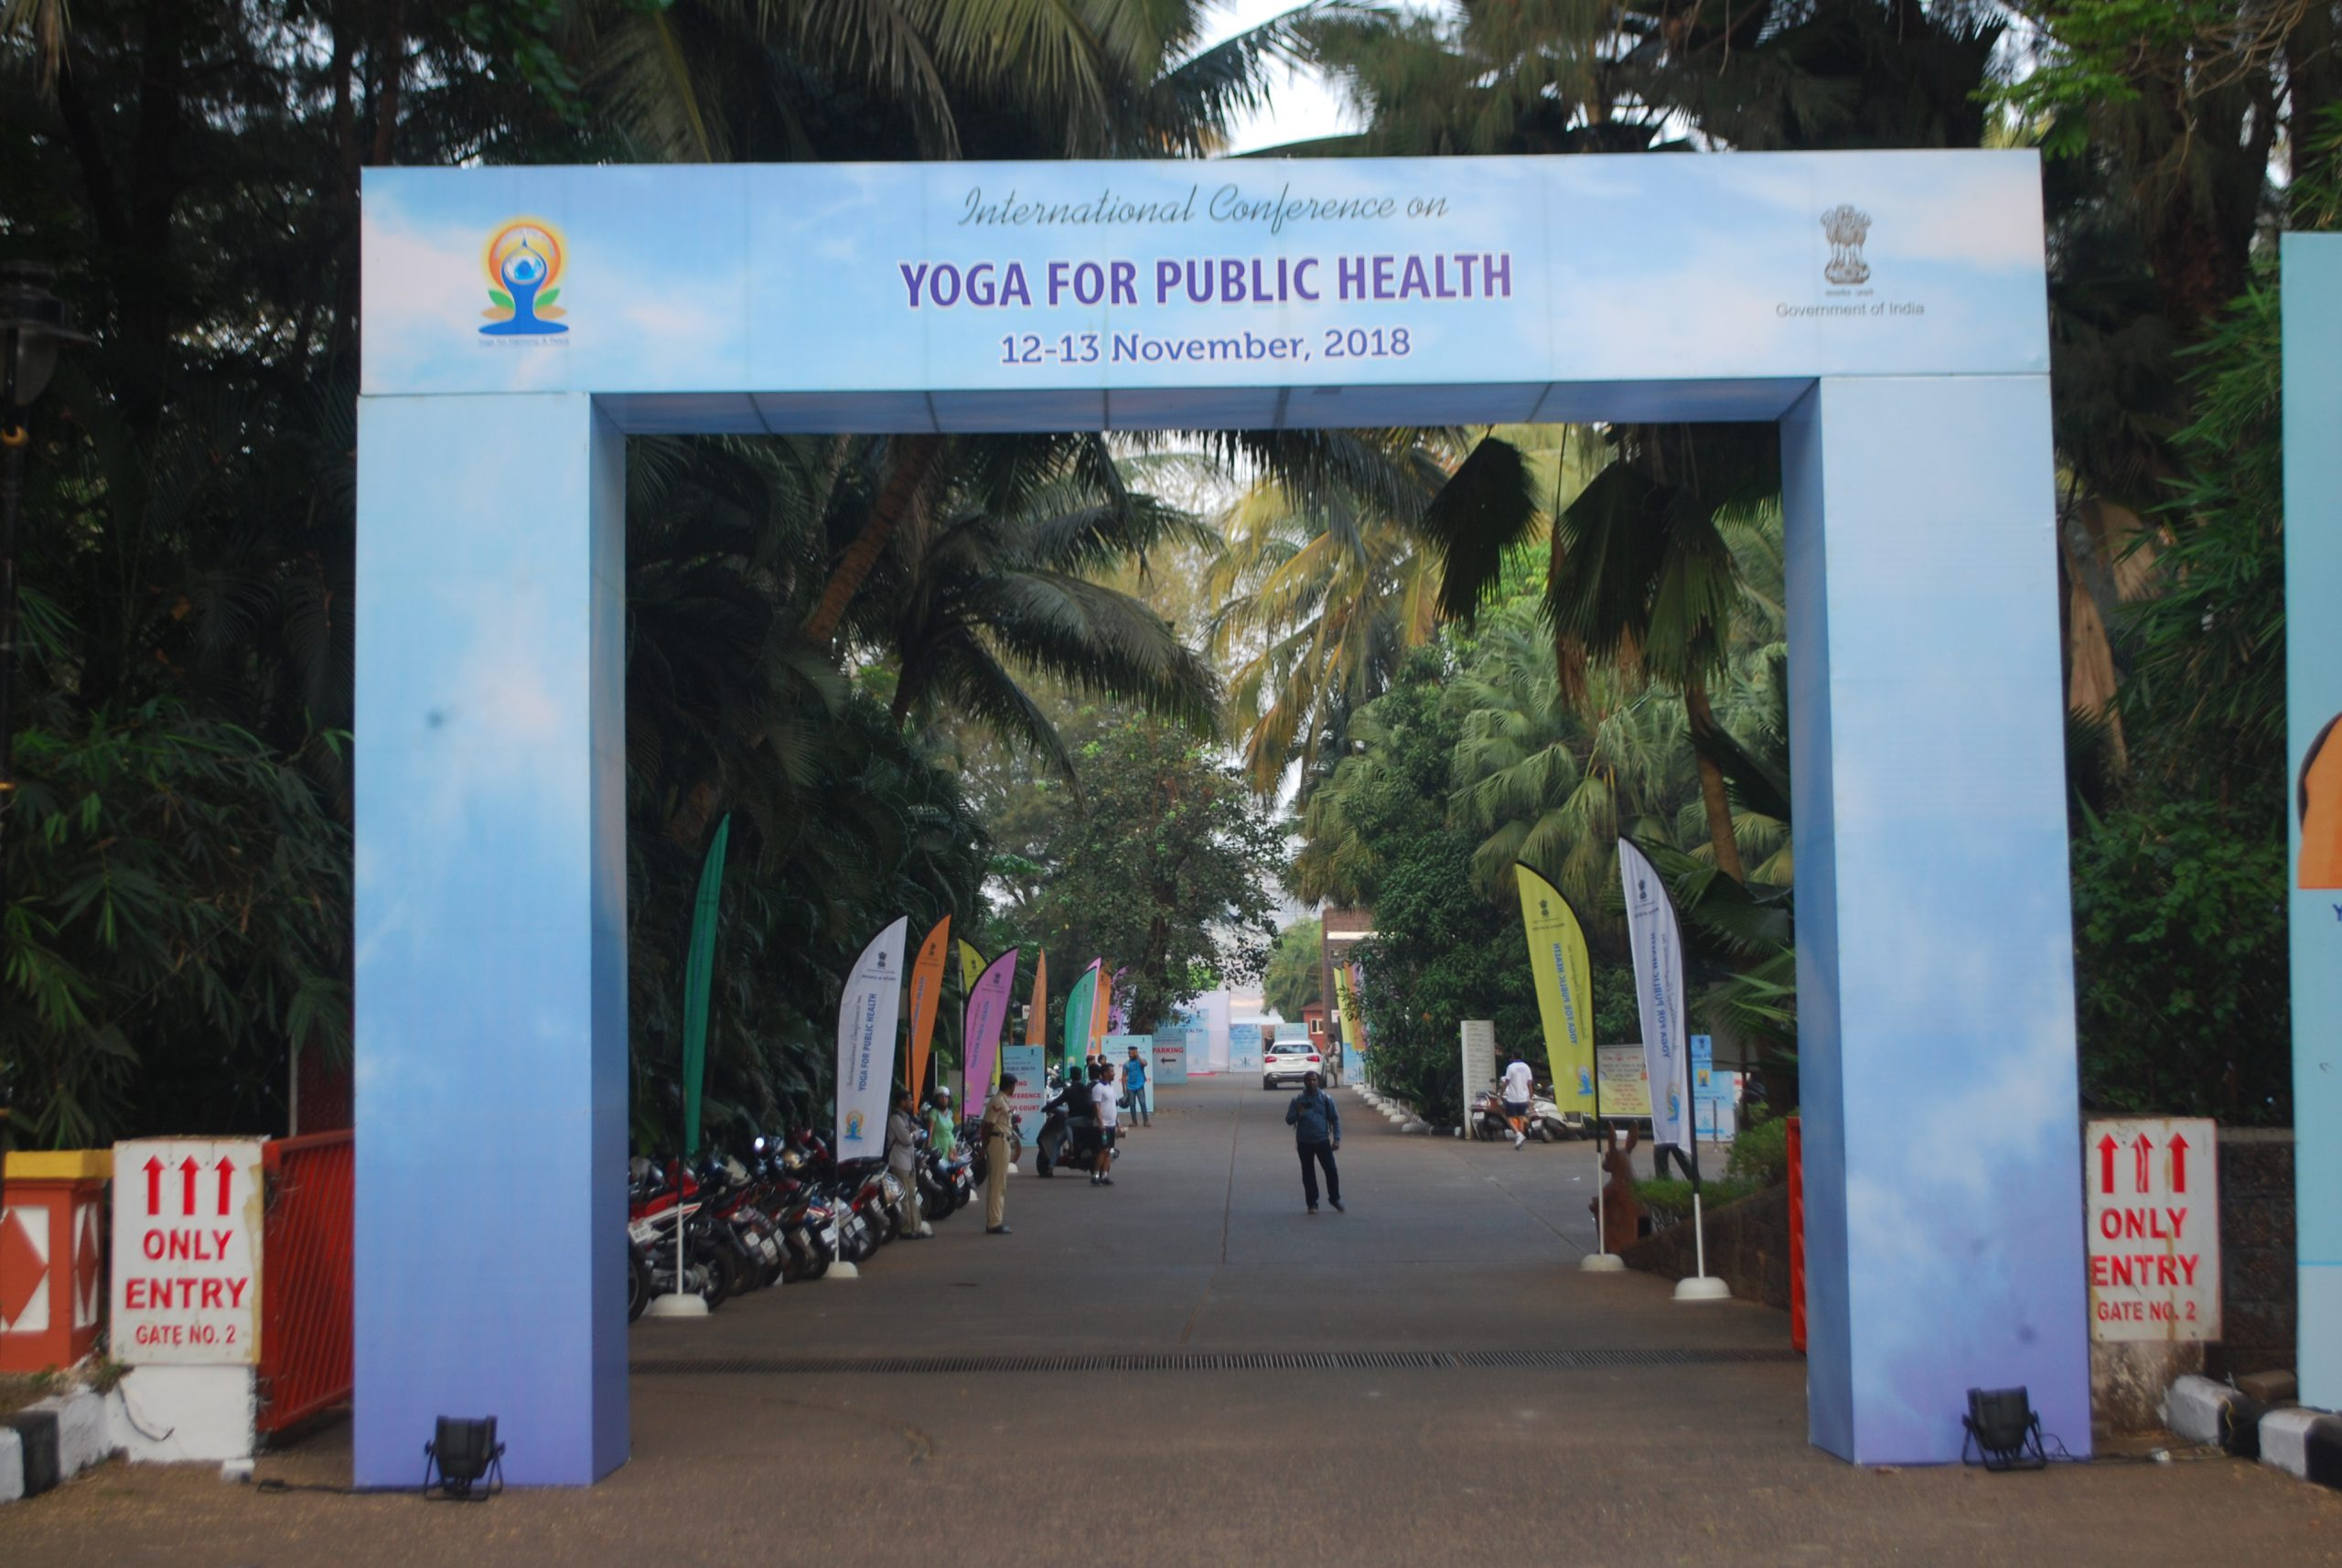 International Conference Yoga for Public Health